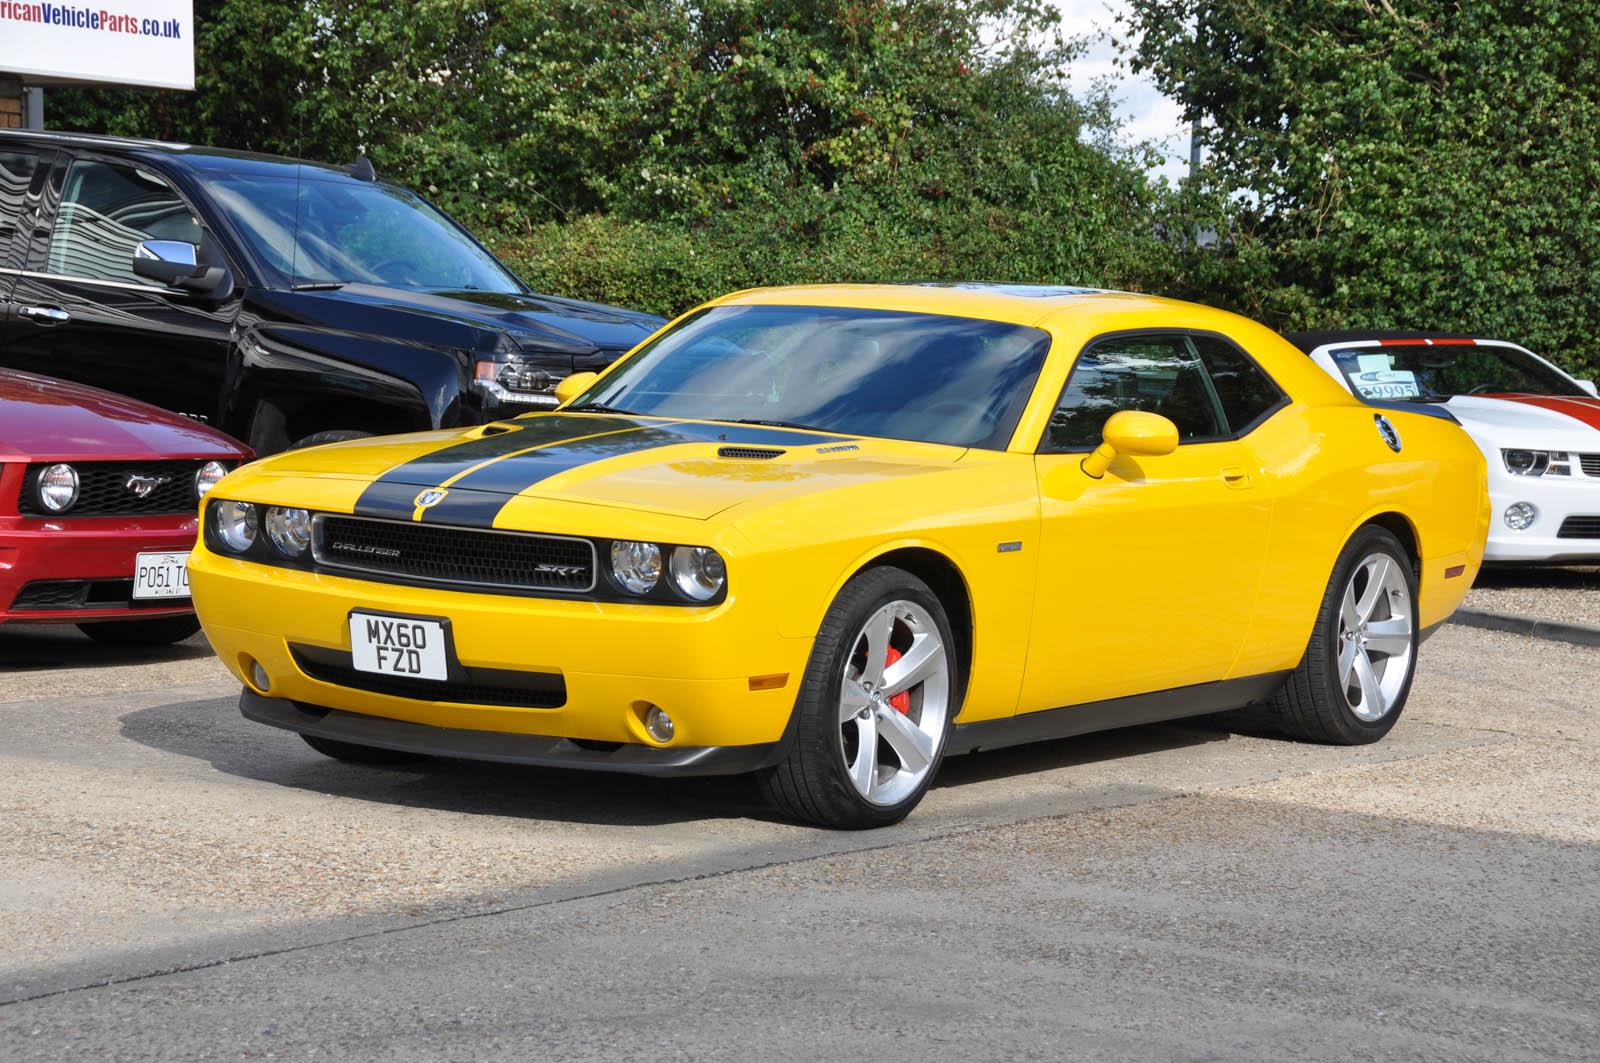 2010 dodge challenger srt8 6 1 litre v8 auto david boatwright partnership dodge ram f 150. Black Bedroom Furniture Sets. Home Design Ideas